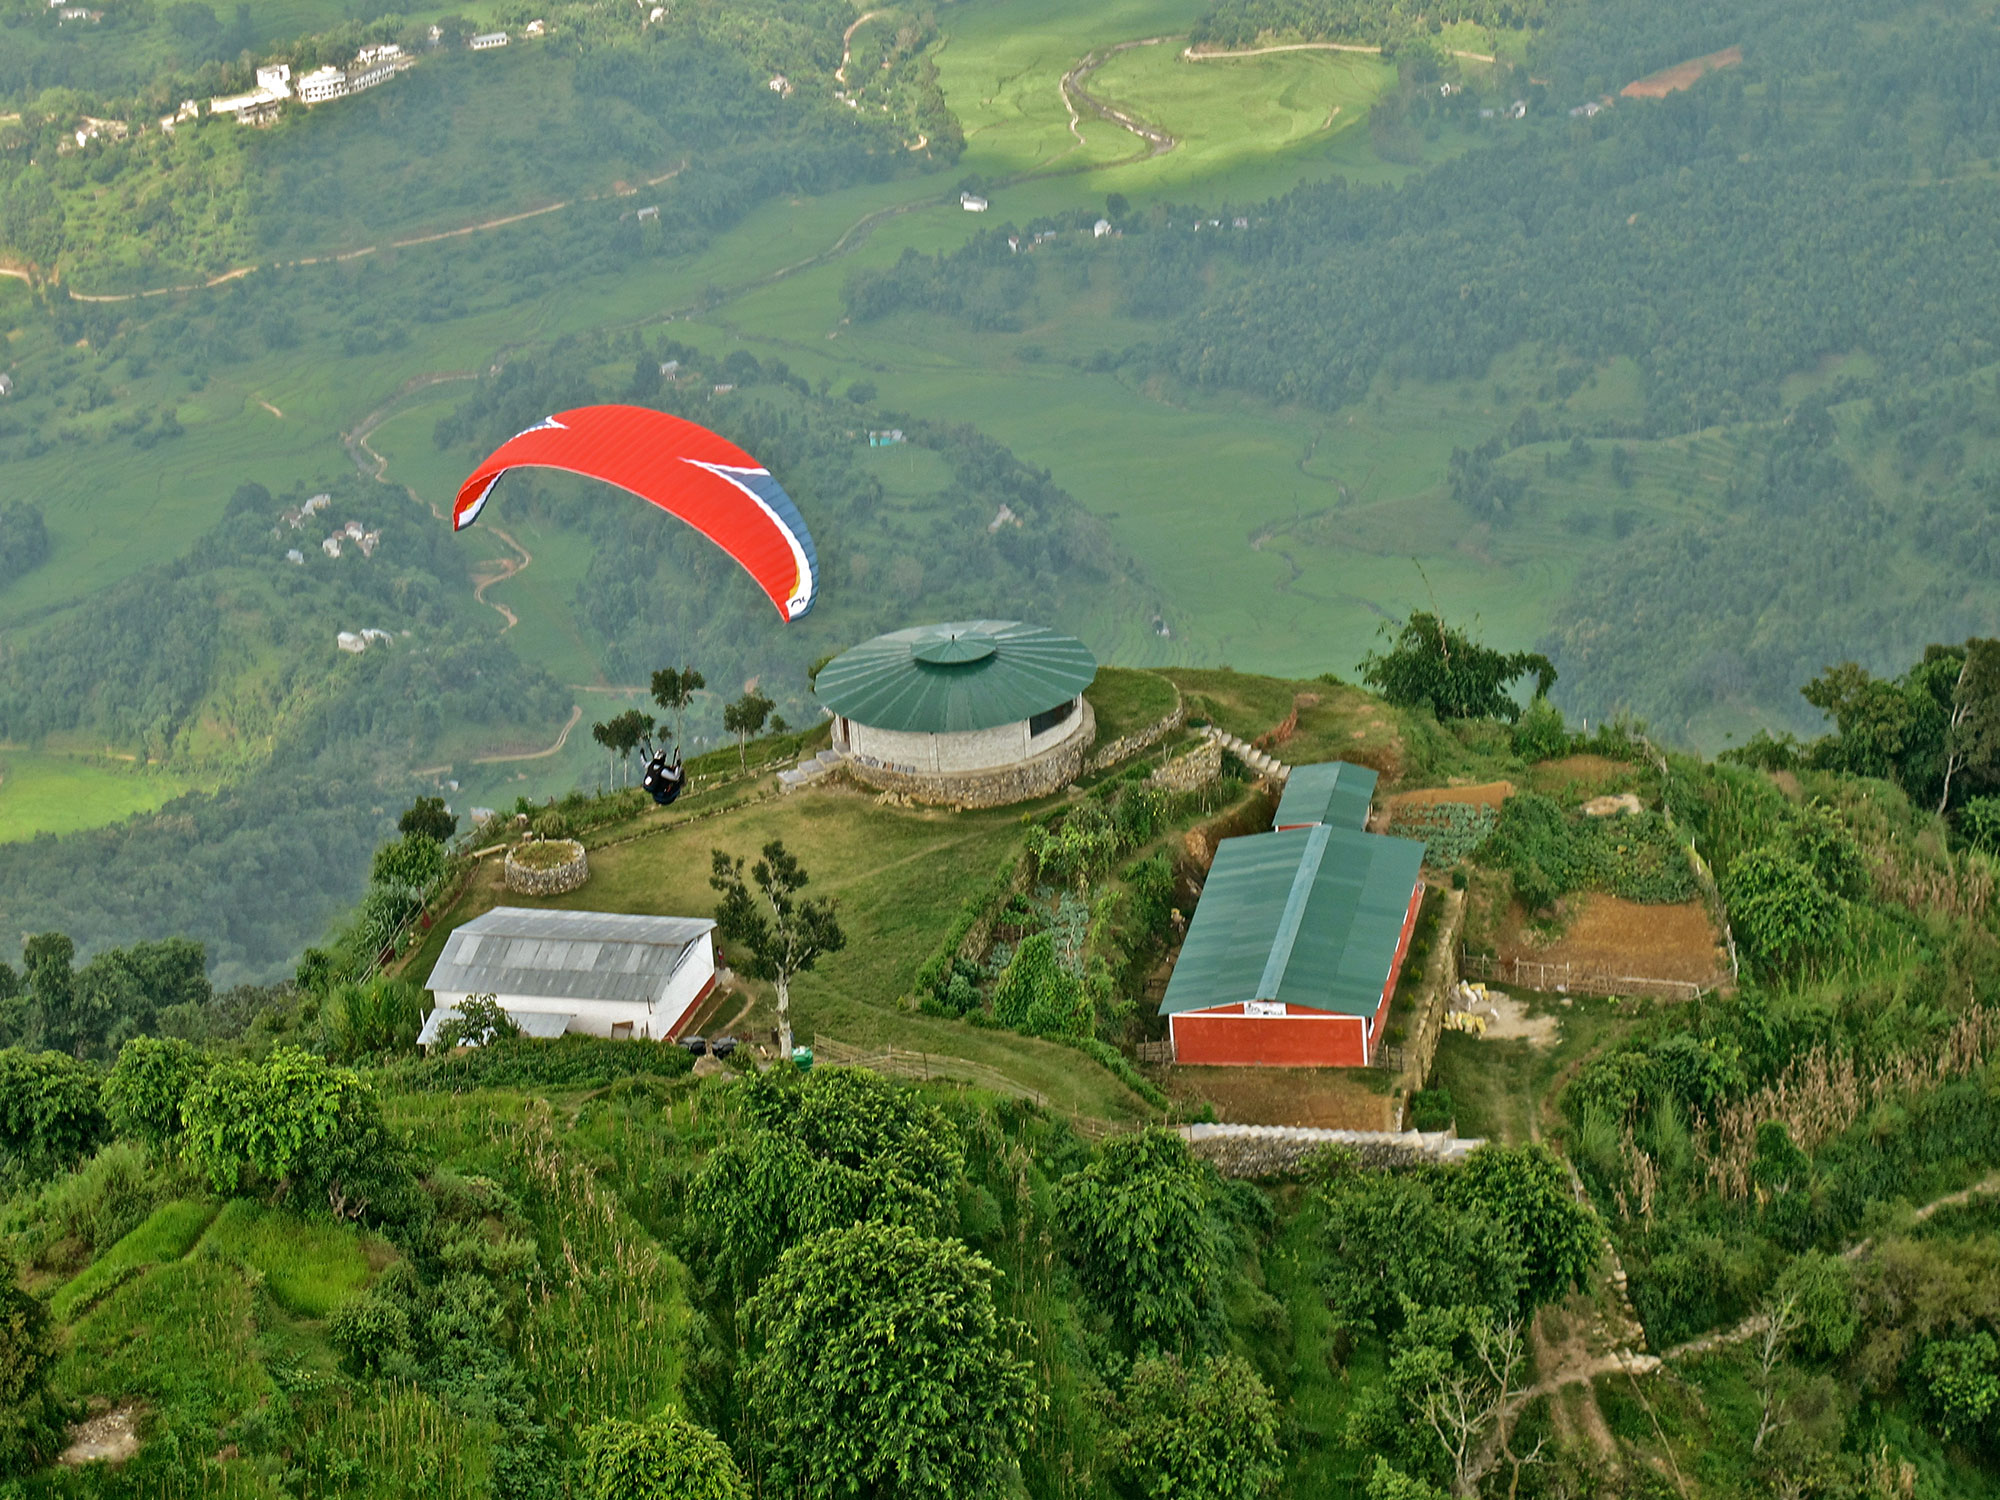 An aerial view of Sano Babu's Resort and Adventure School that offers paragliding courses for people at all levels. PHOTO: SANO BABU SUNUWAR